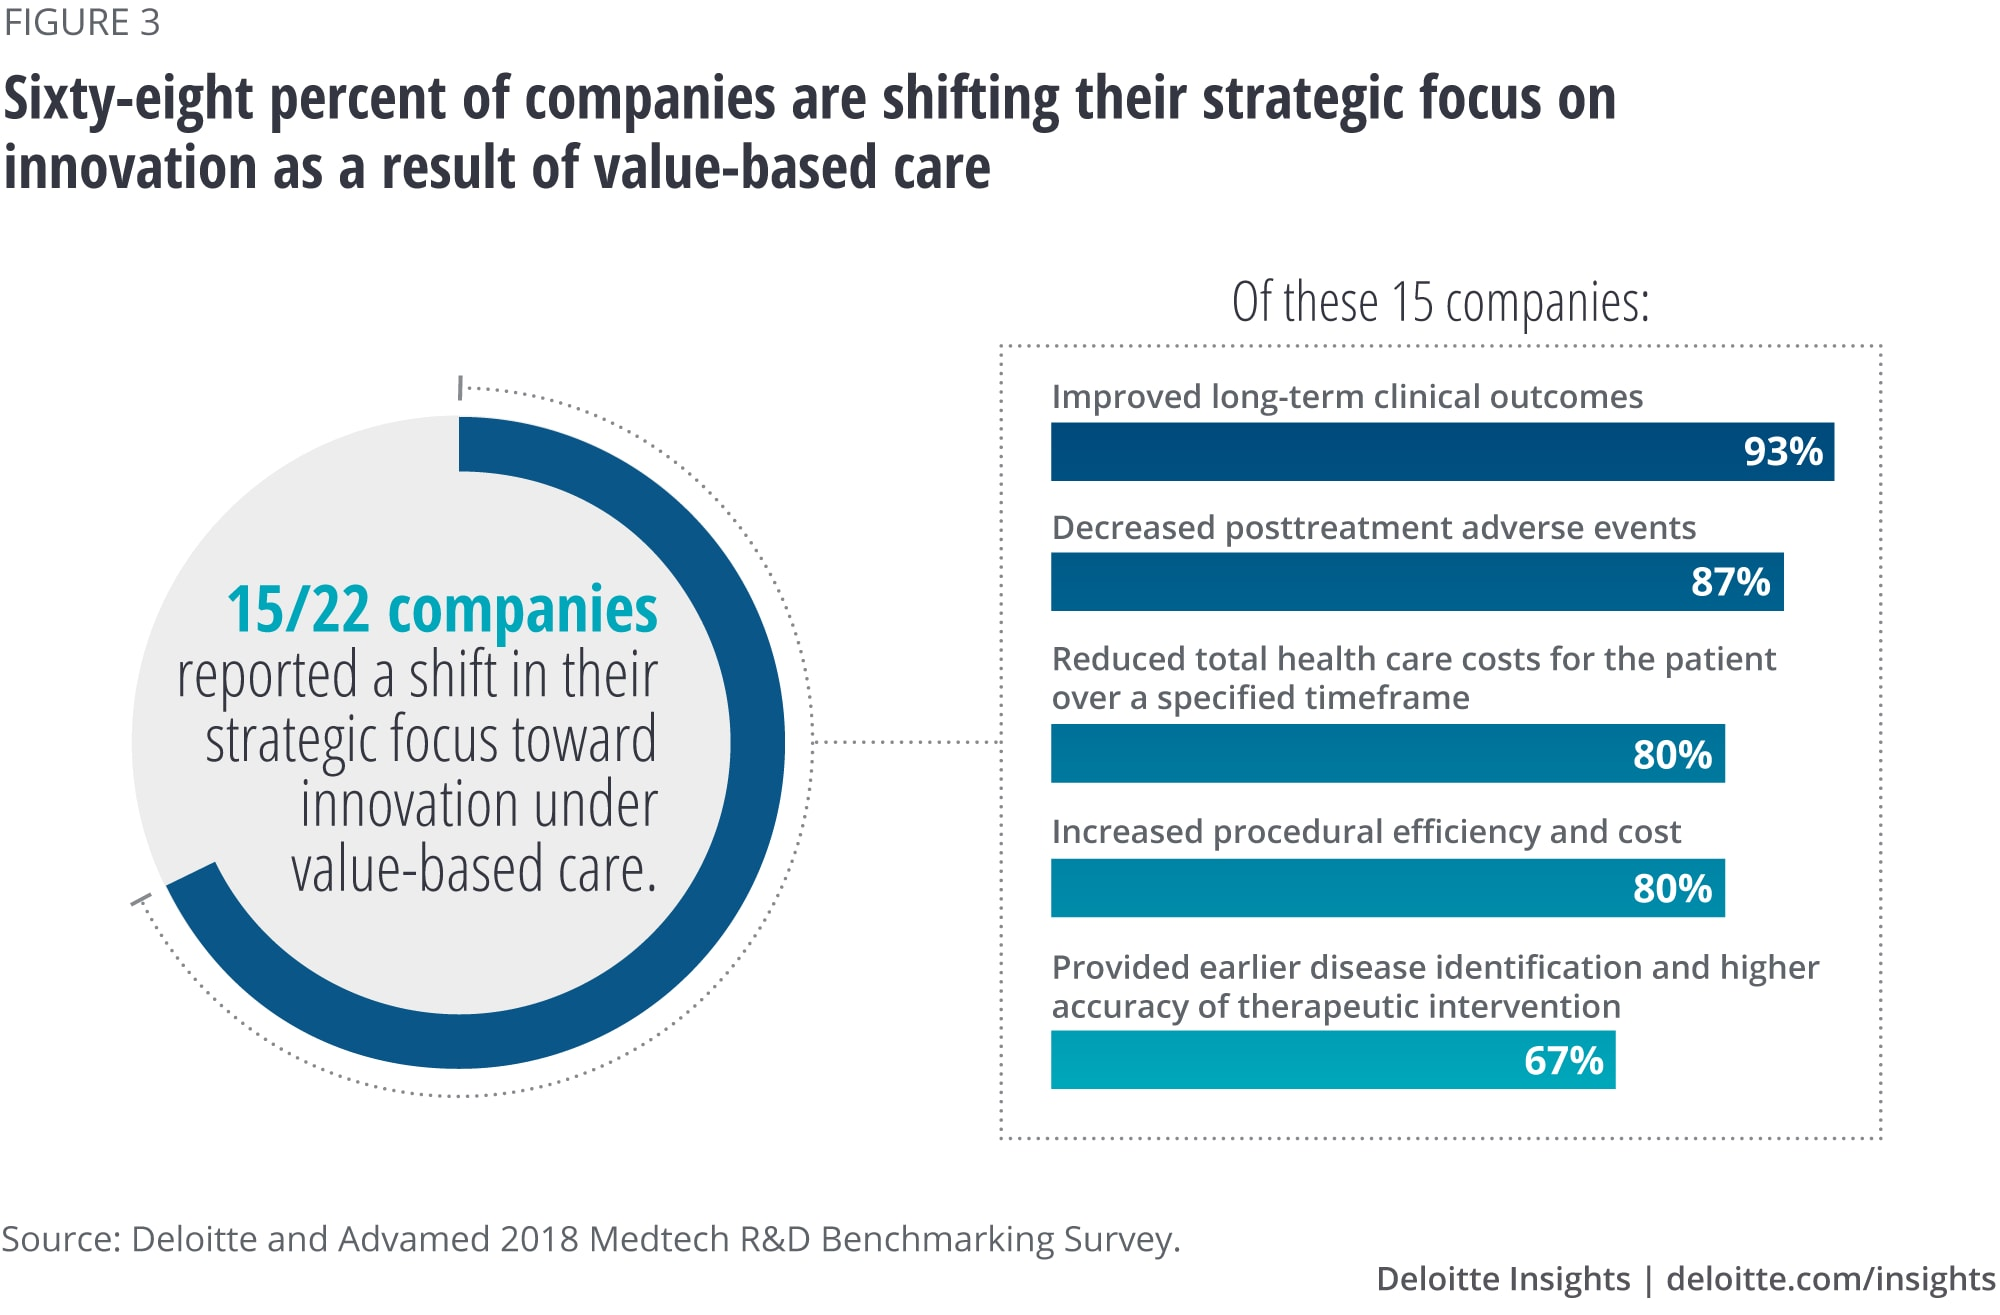 Sixty-eight percent of companies are shifting their strategic focus on innovation as a result of value-based care